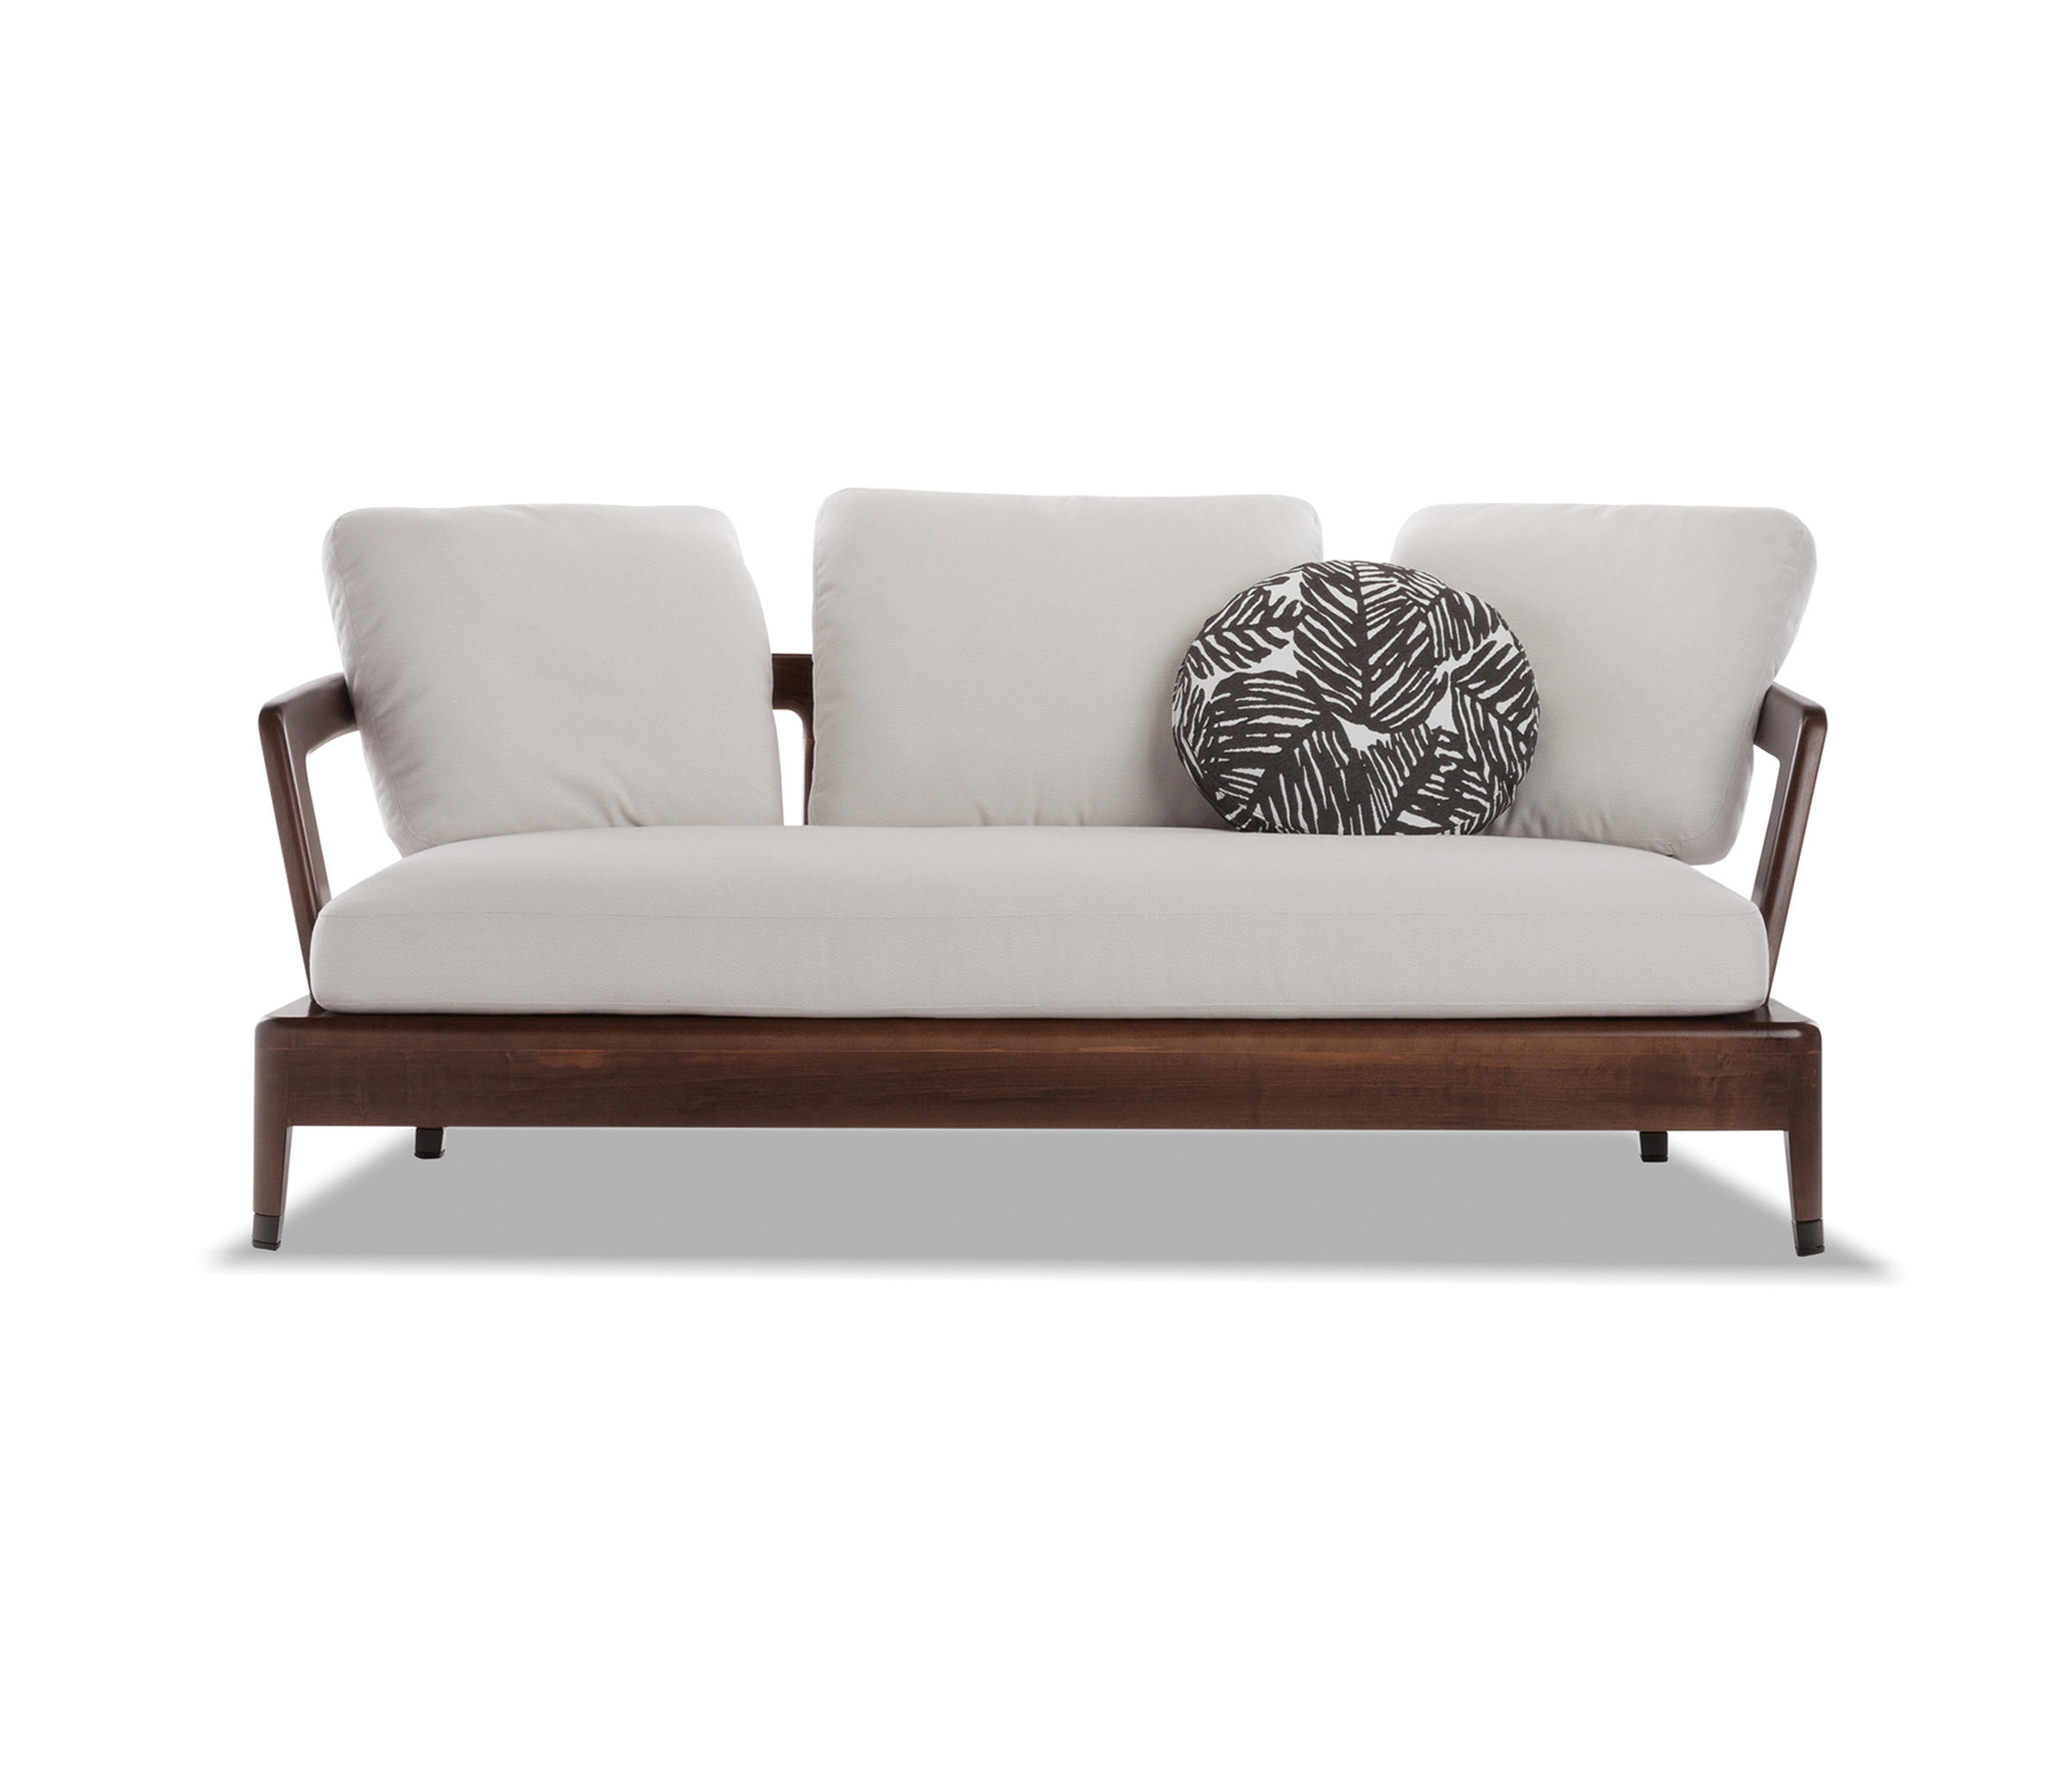 Virginia outdoor sofa garden sofas from minotti architonic for Sofa rinconera exterior